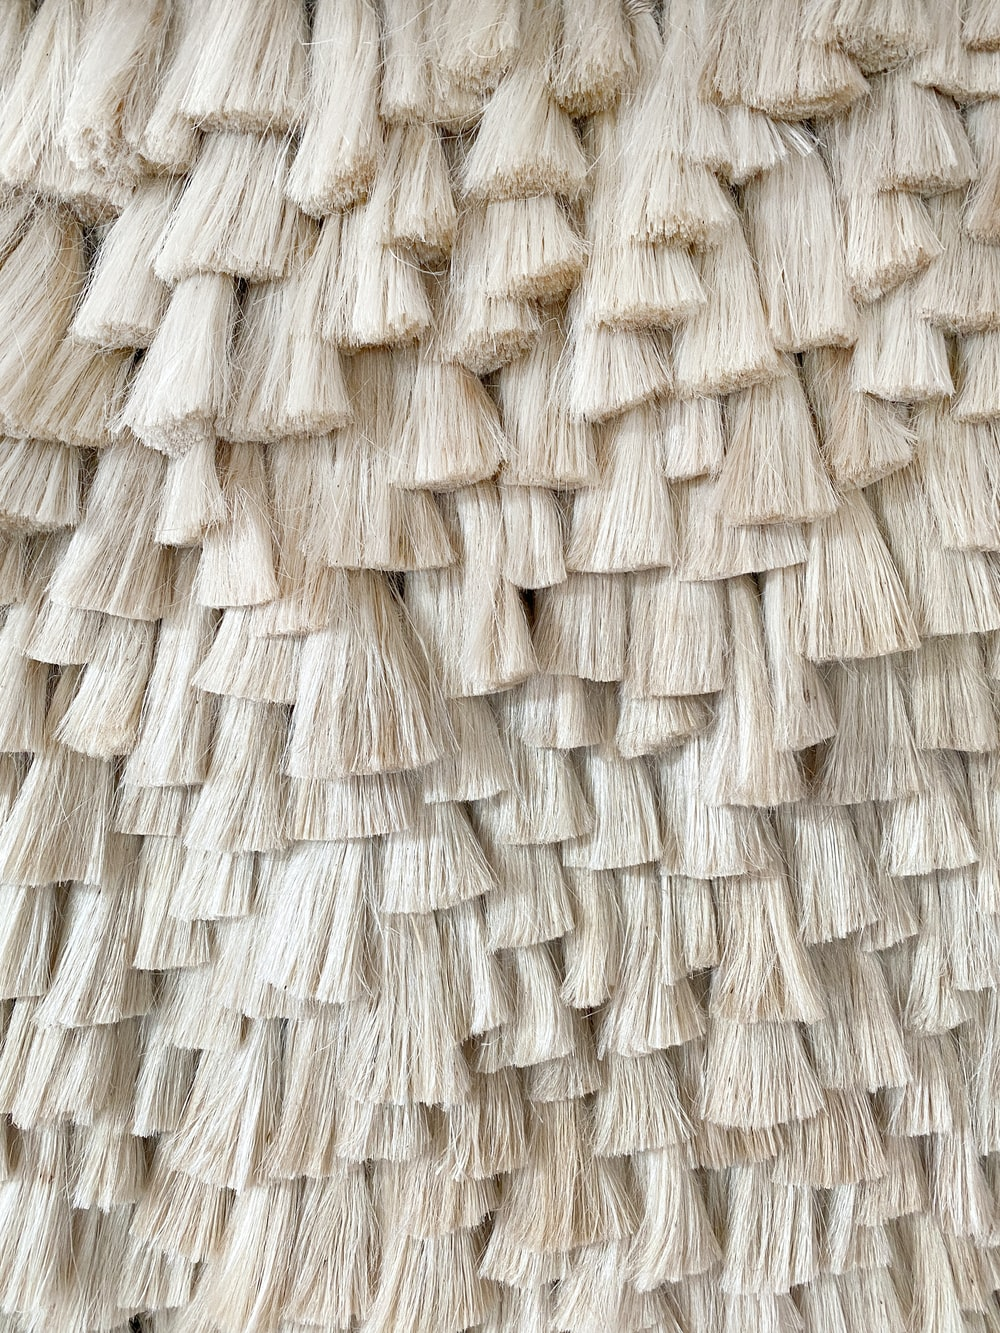 brown woven woven textile in close up photography